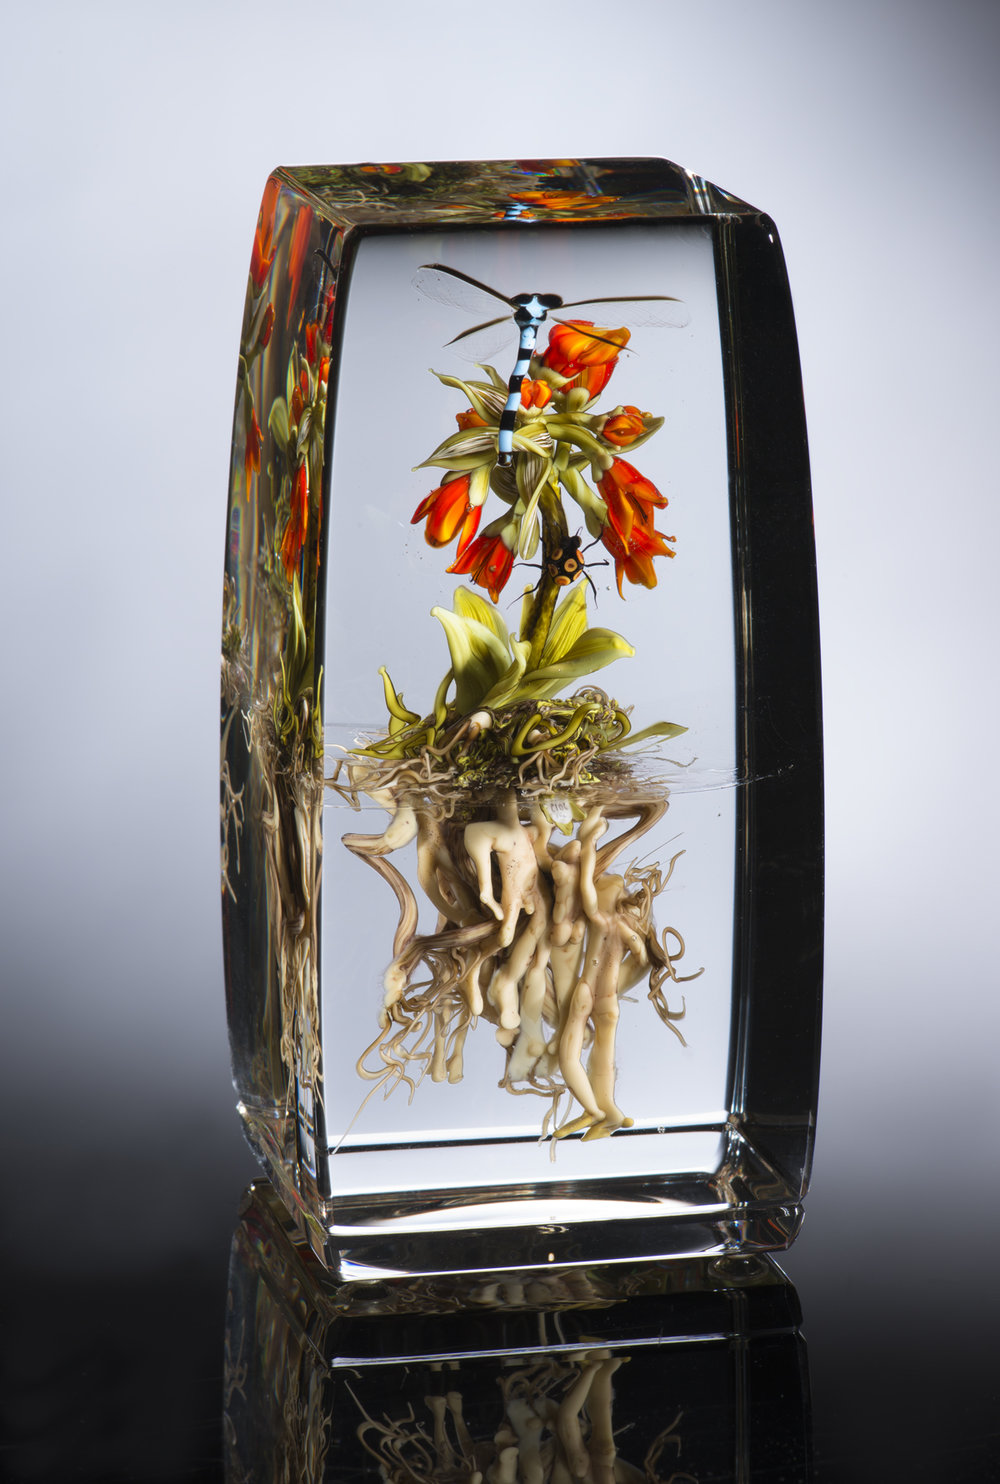 2012; Crown Imperial Lily with Figures and Insects; H. 5.5 inches